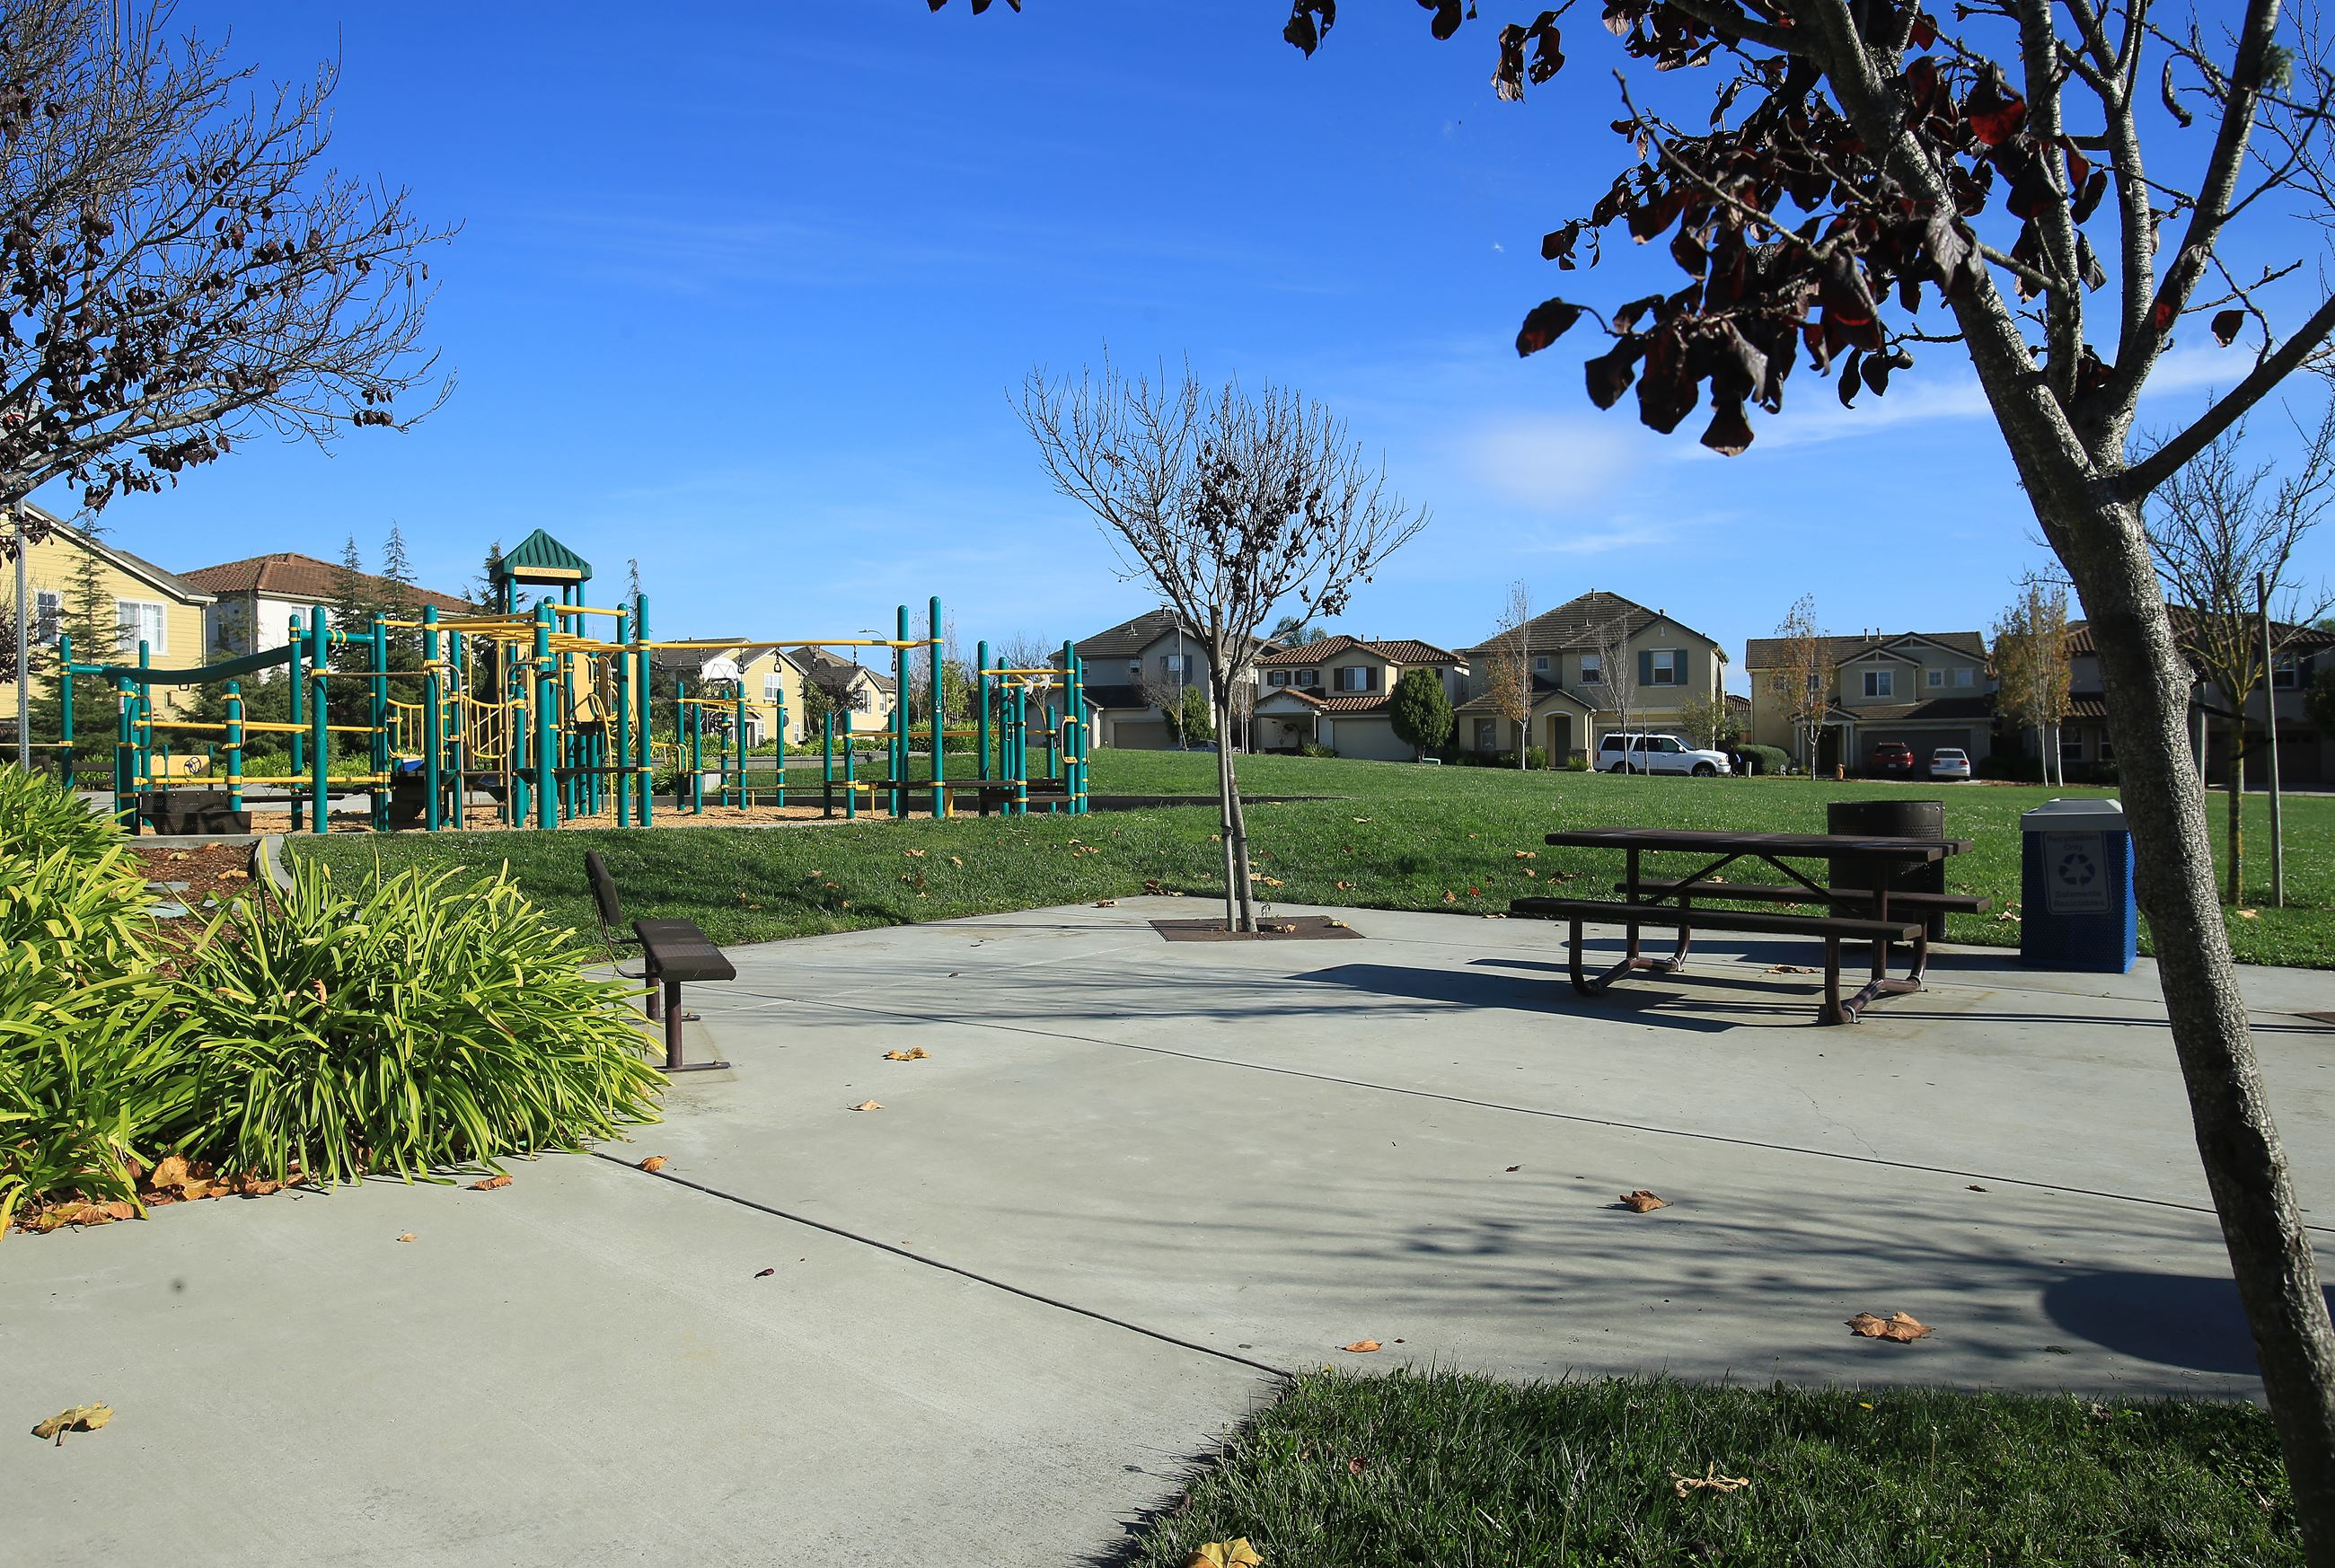 Concrete patio and playground structure at Las Brisas park